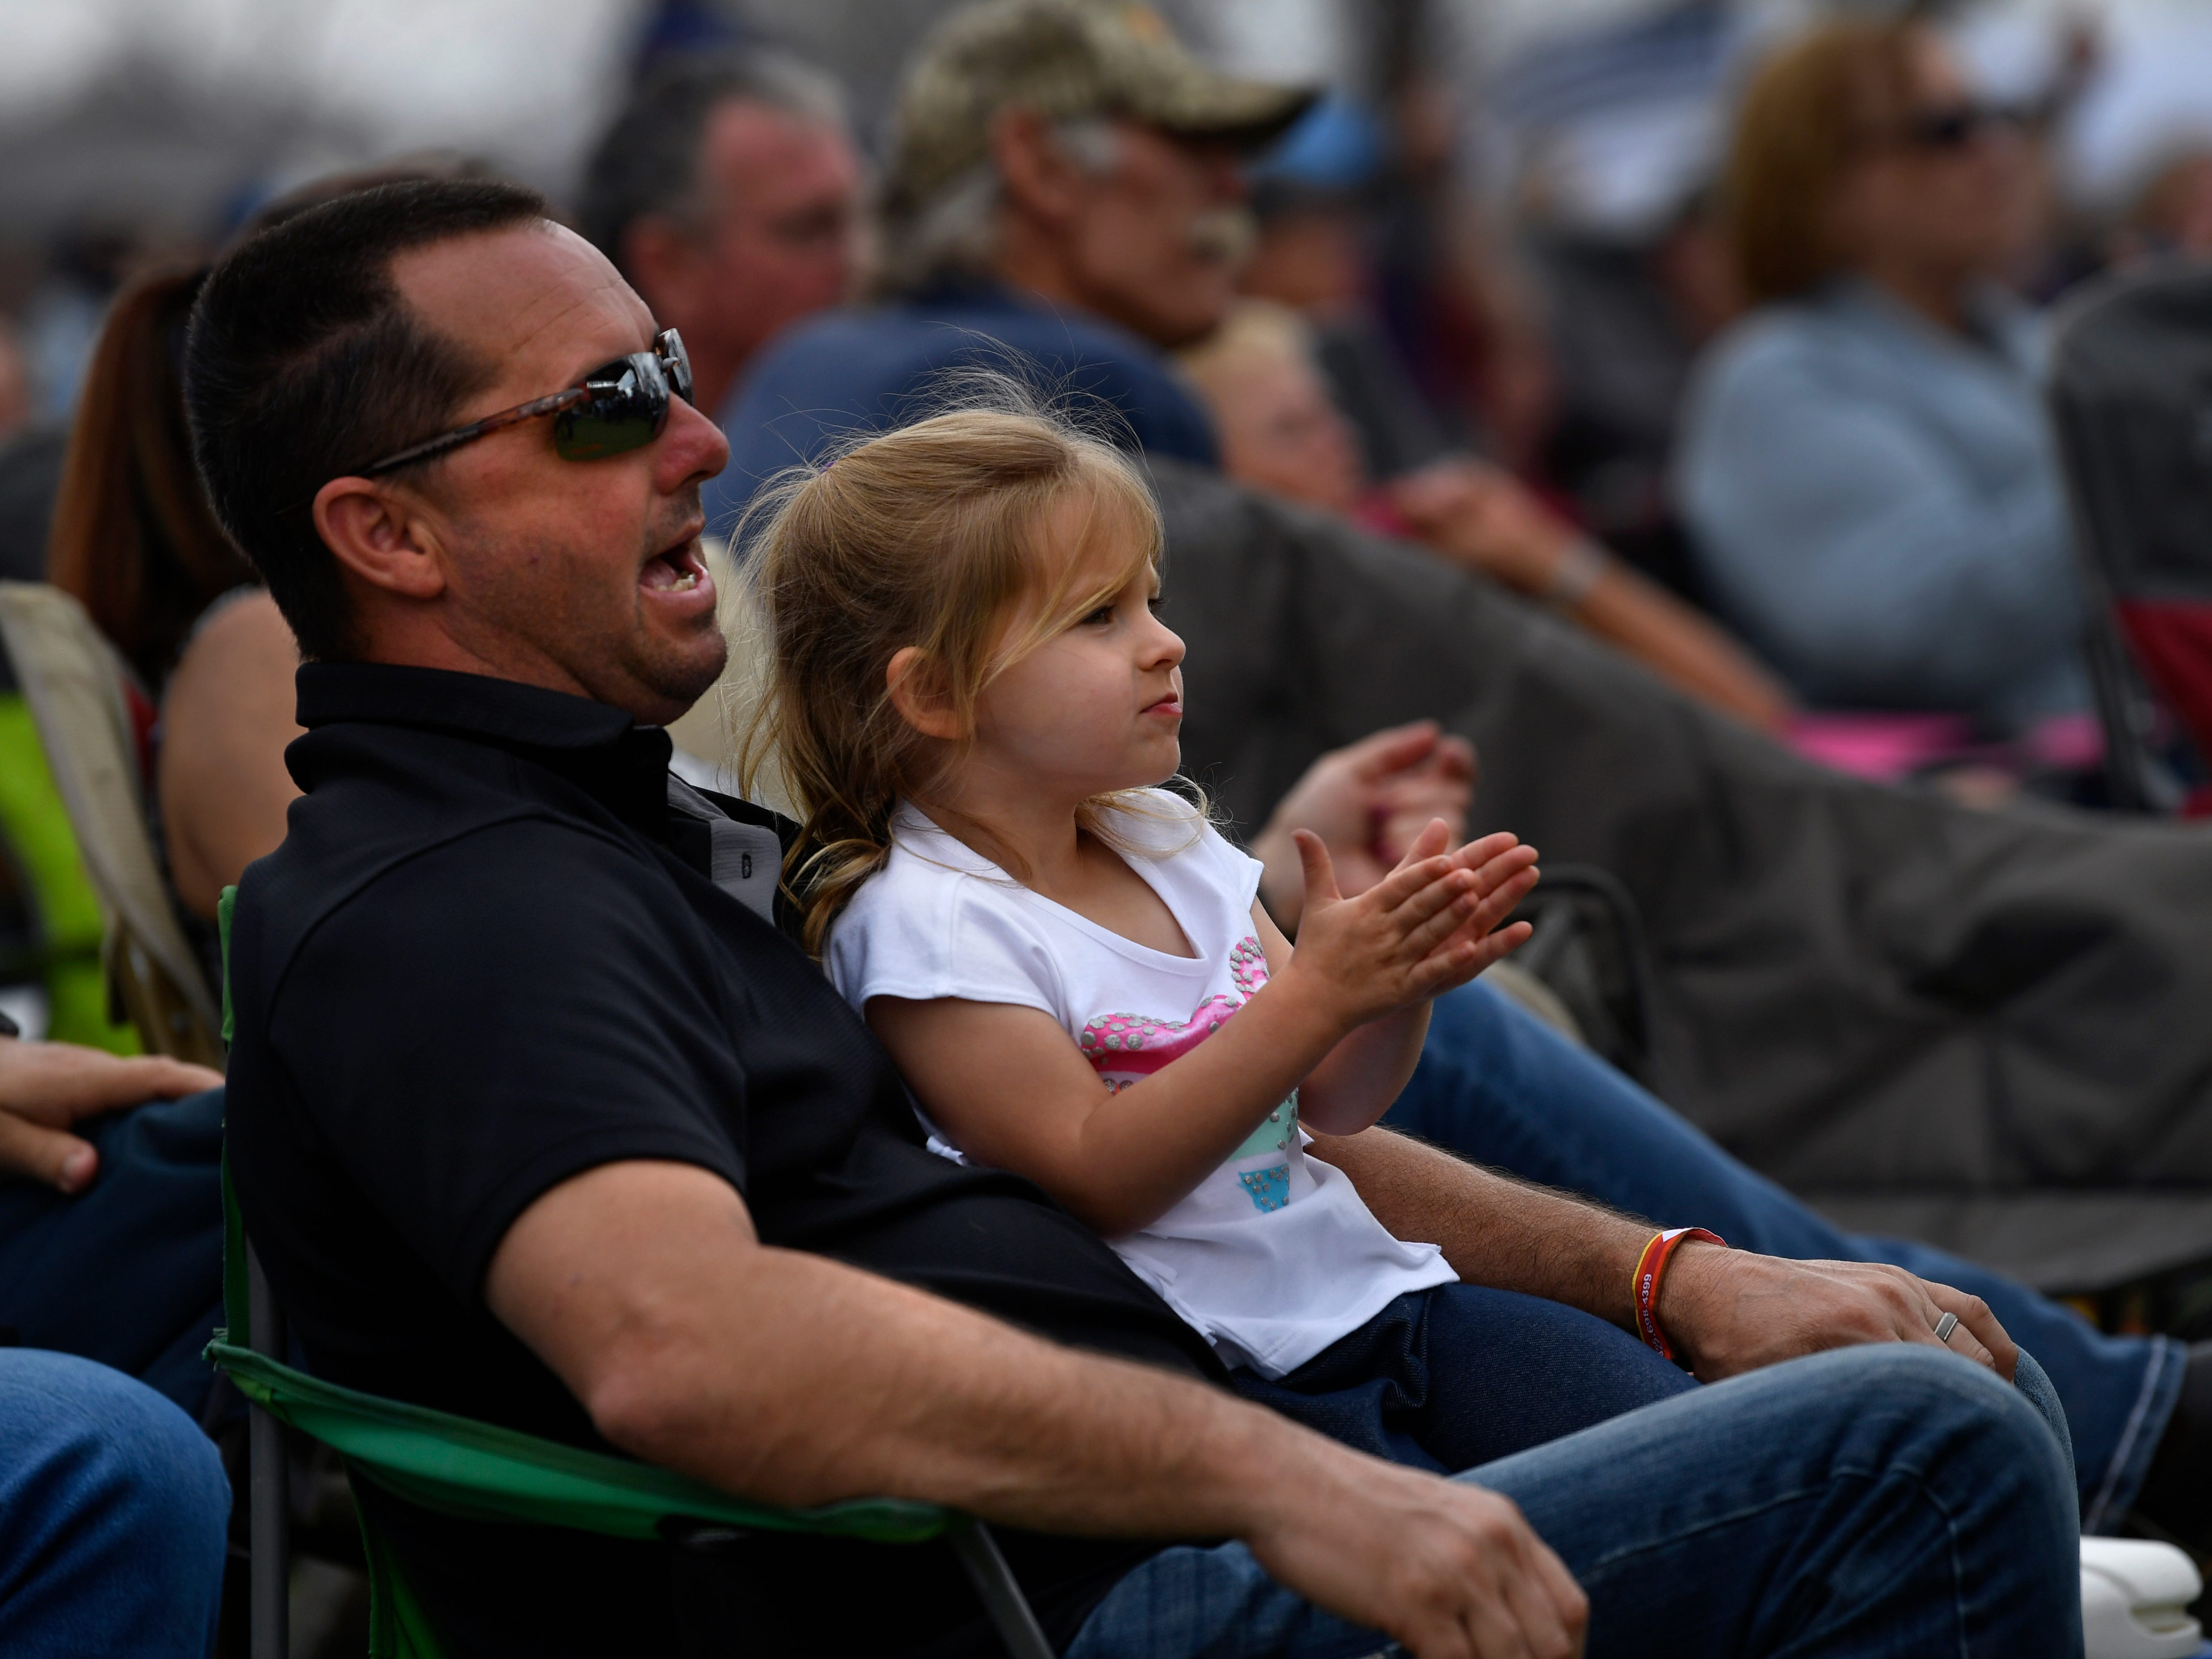 Shawn Bean watches the Jerrod Medulla Band with his four-year-old daughter Kyler on his lap during Friday's Outlaws & Legends music festival March 22, 2019.